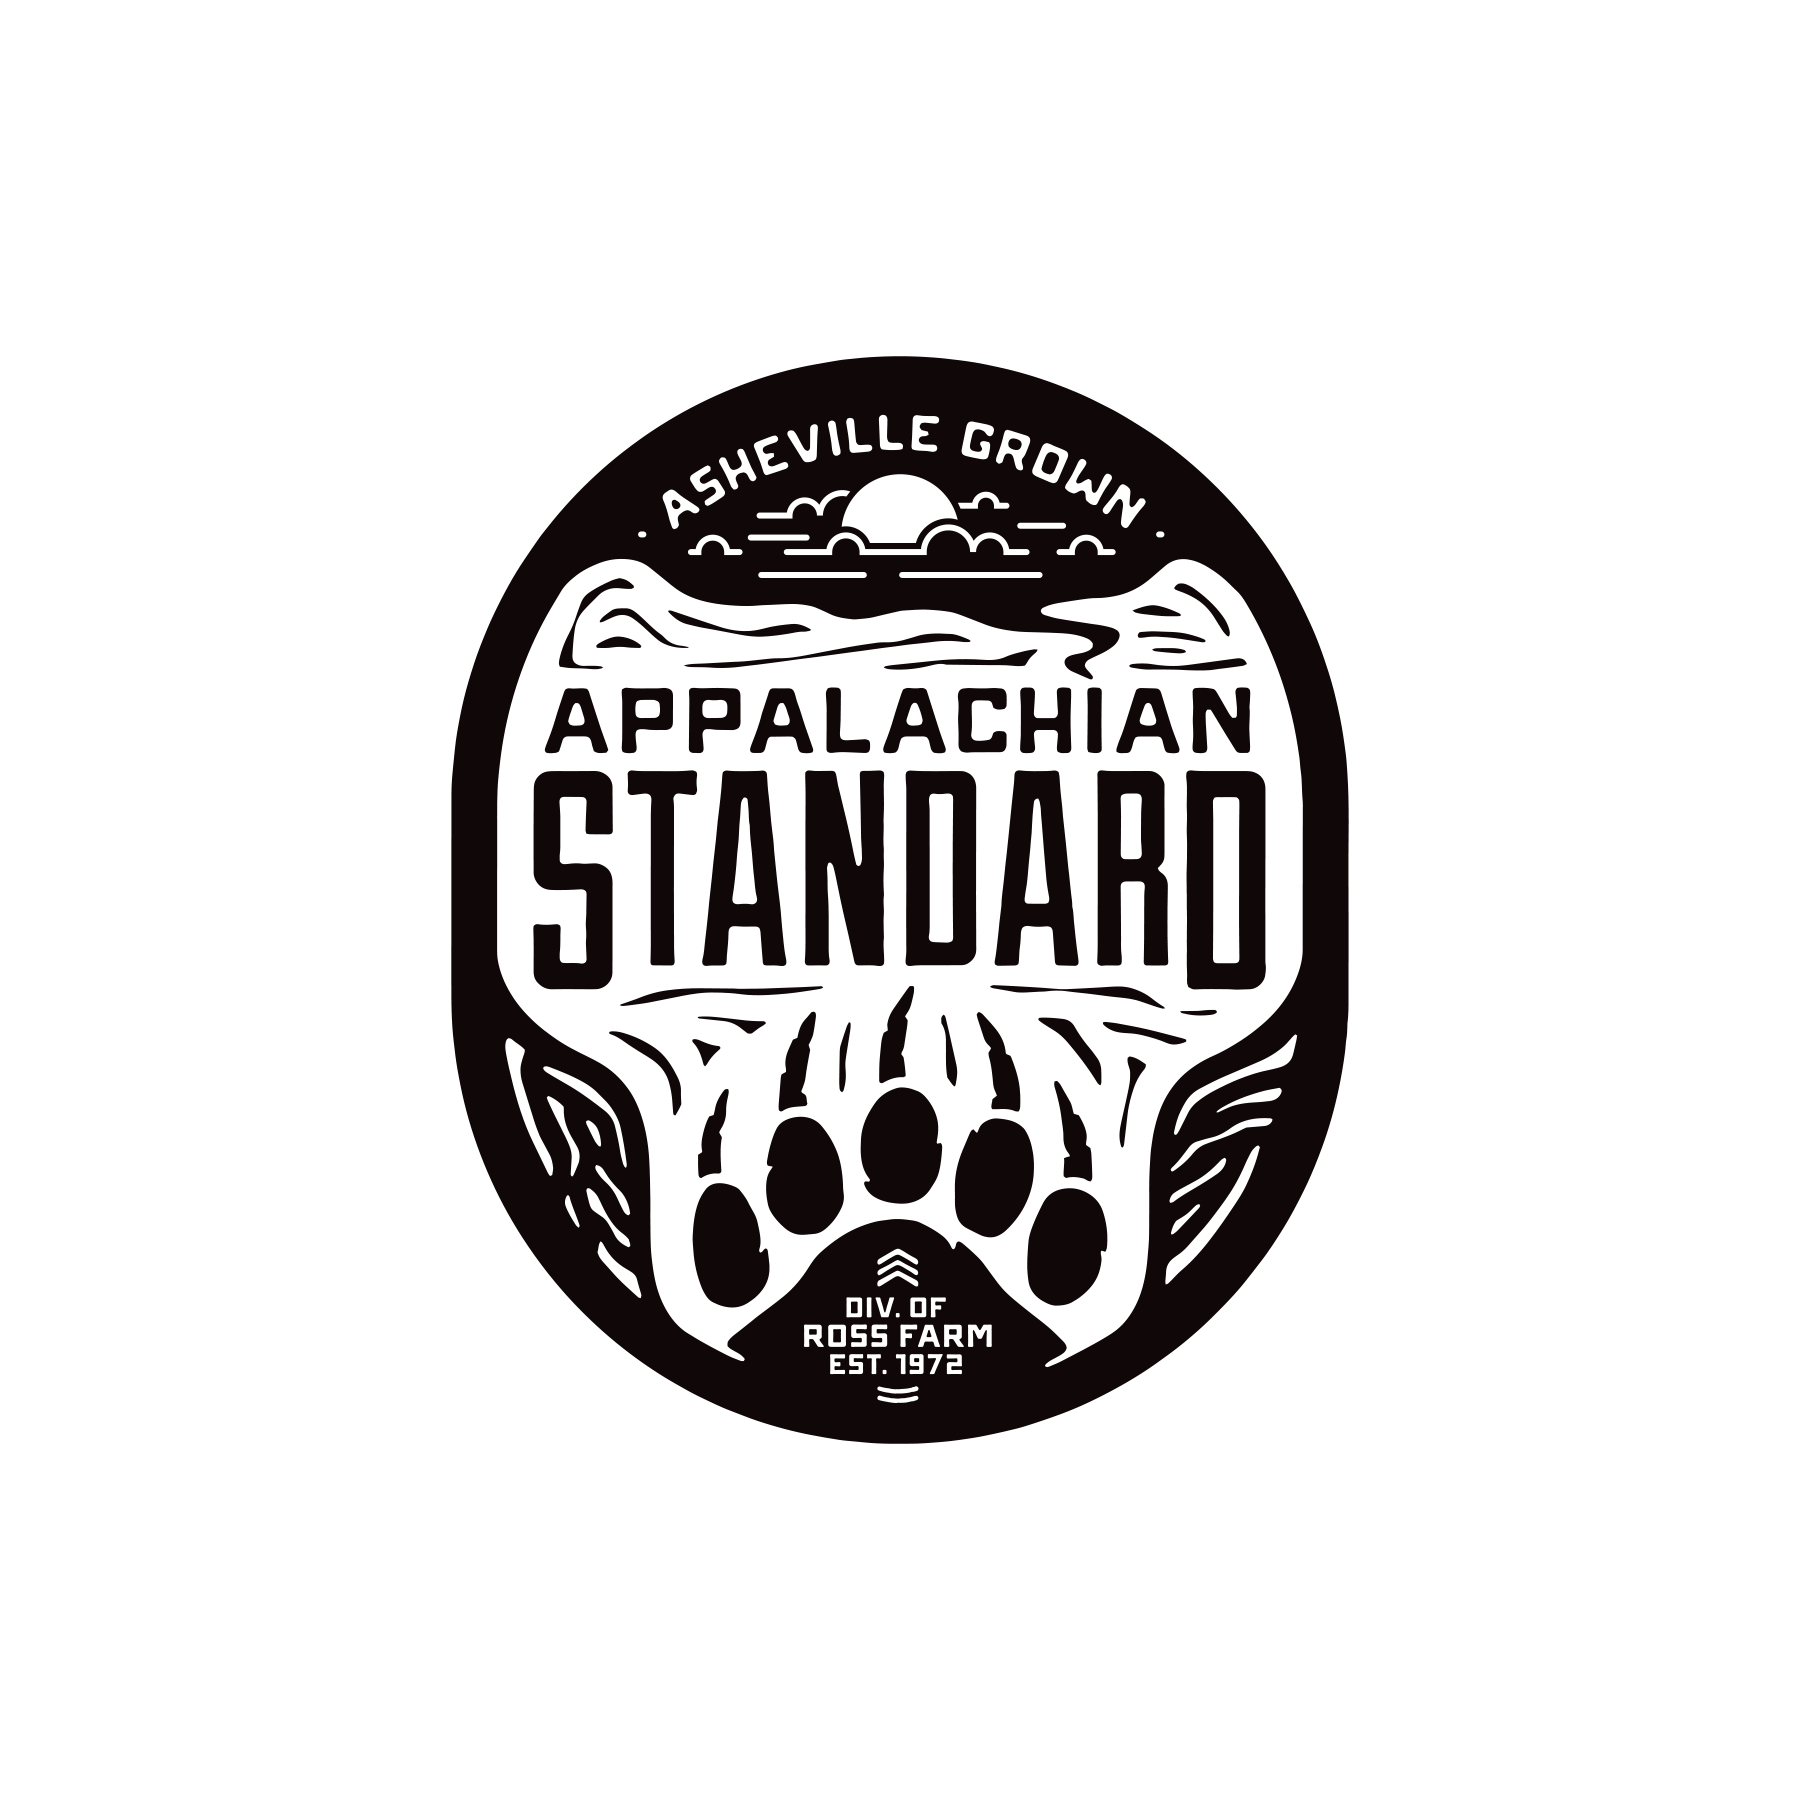 We are excited to announce we have partnered with Appalachian Standard! - Full Spectrum Hemp Extract out of Asheville, NC.We have topical products as well as oils to use sublingually (applying drops under the tongue).Stop into the studio to pick yours up today!